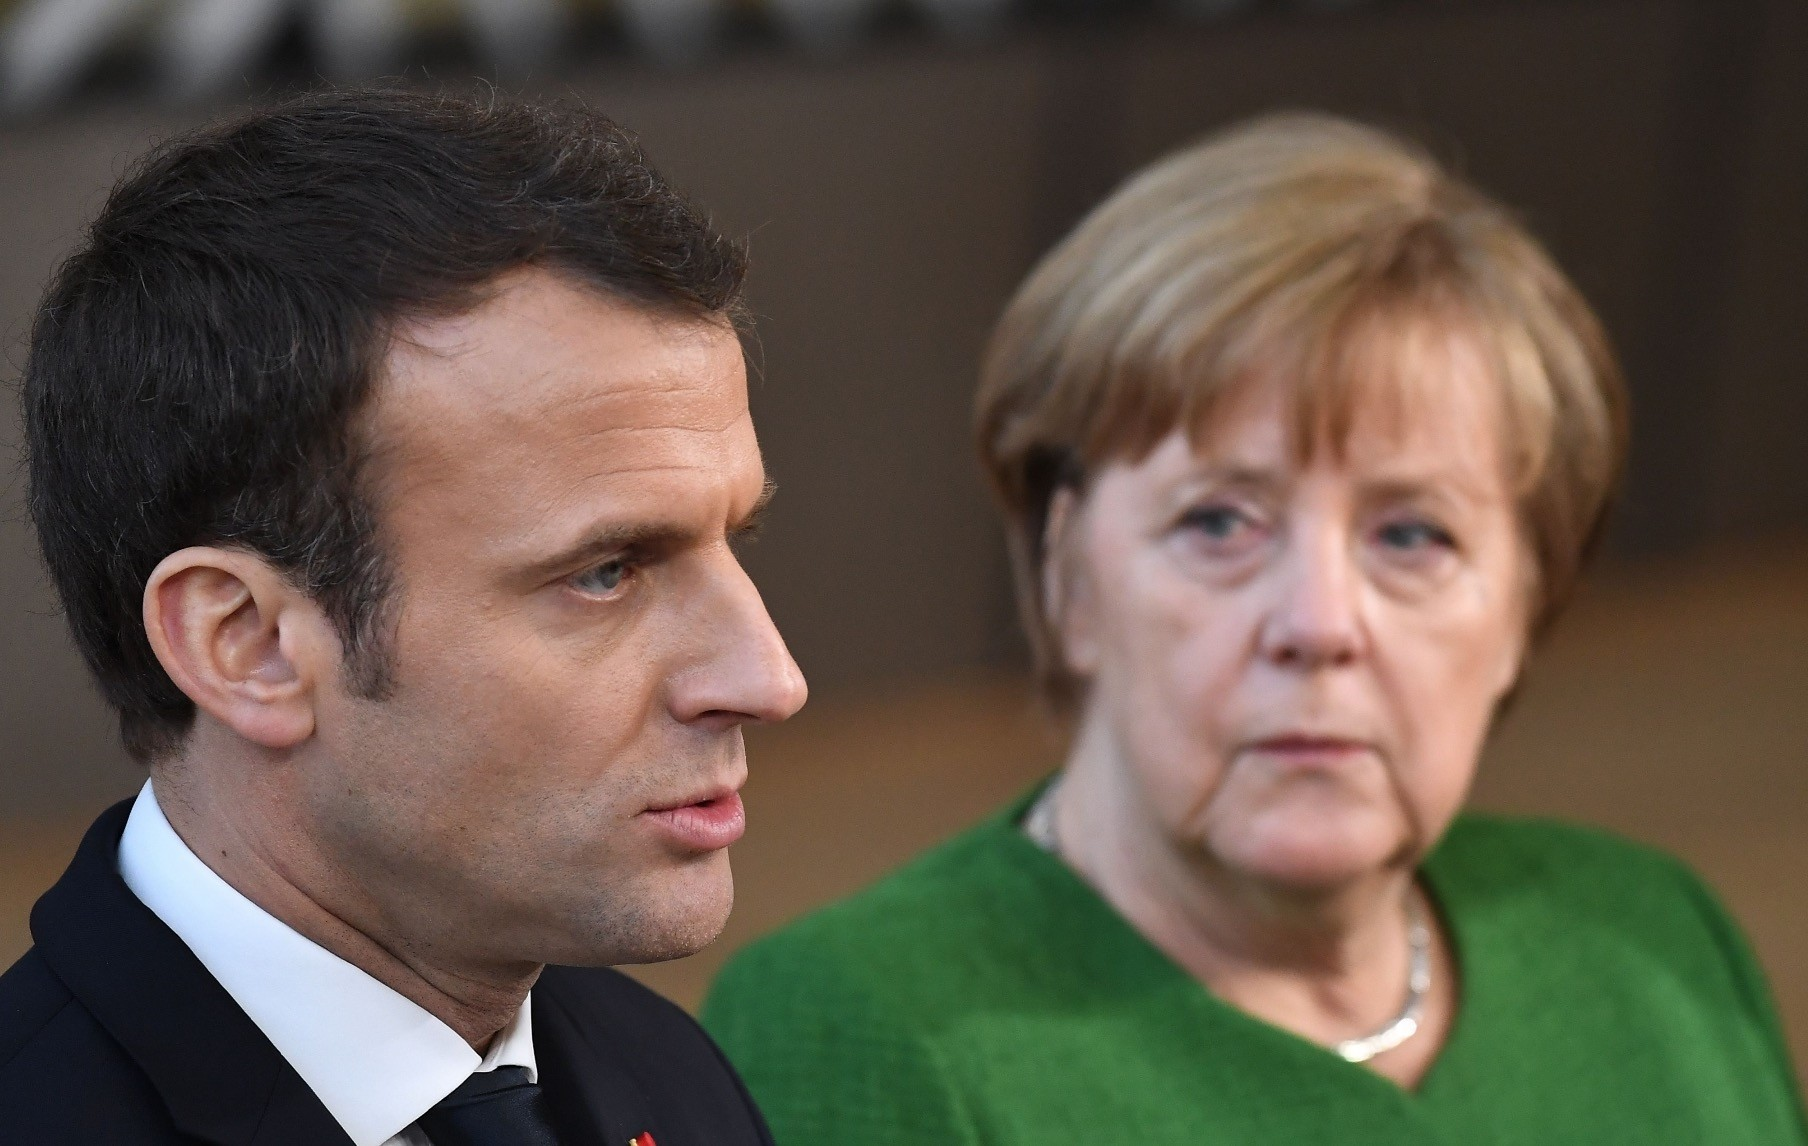 France President Macron (L) speaks to journalists next to German Chancellor Angela Merkel as they arrive for an informal meeting of the 27 EU heads of state and government at European Council headquarters, Brussels,  Feb. 23.